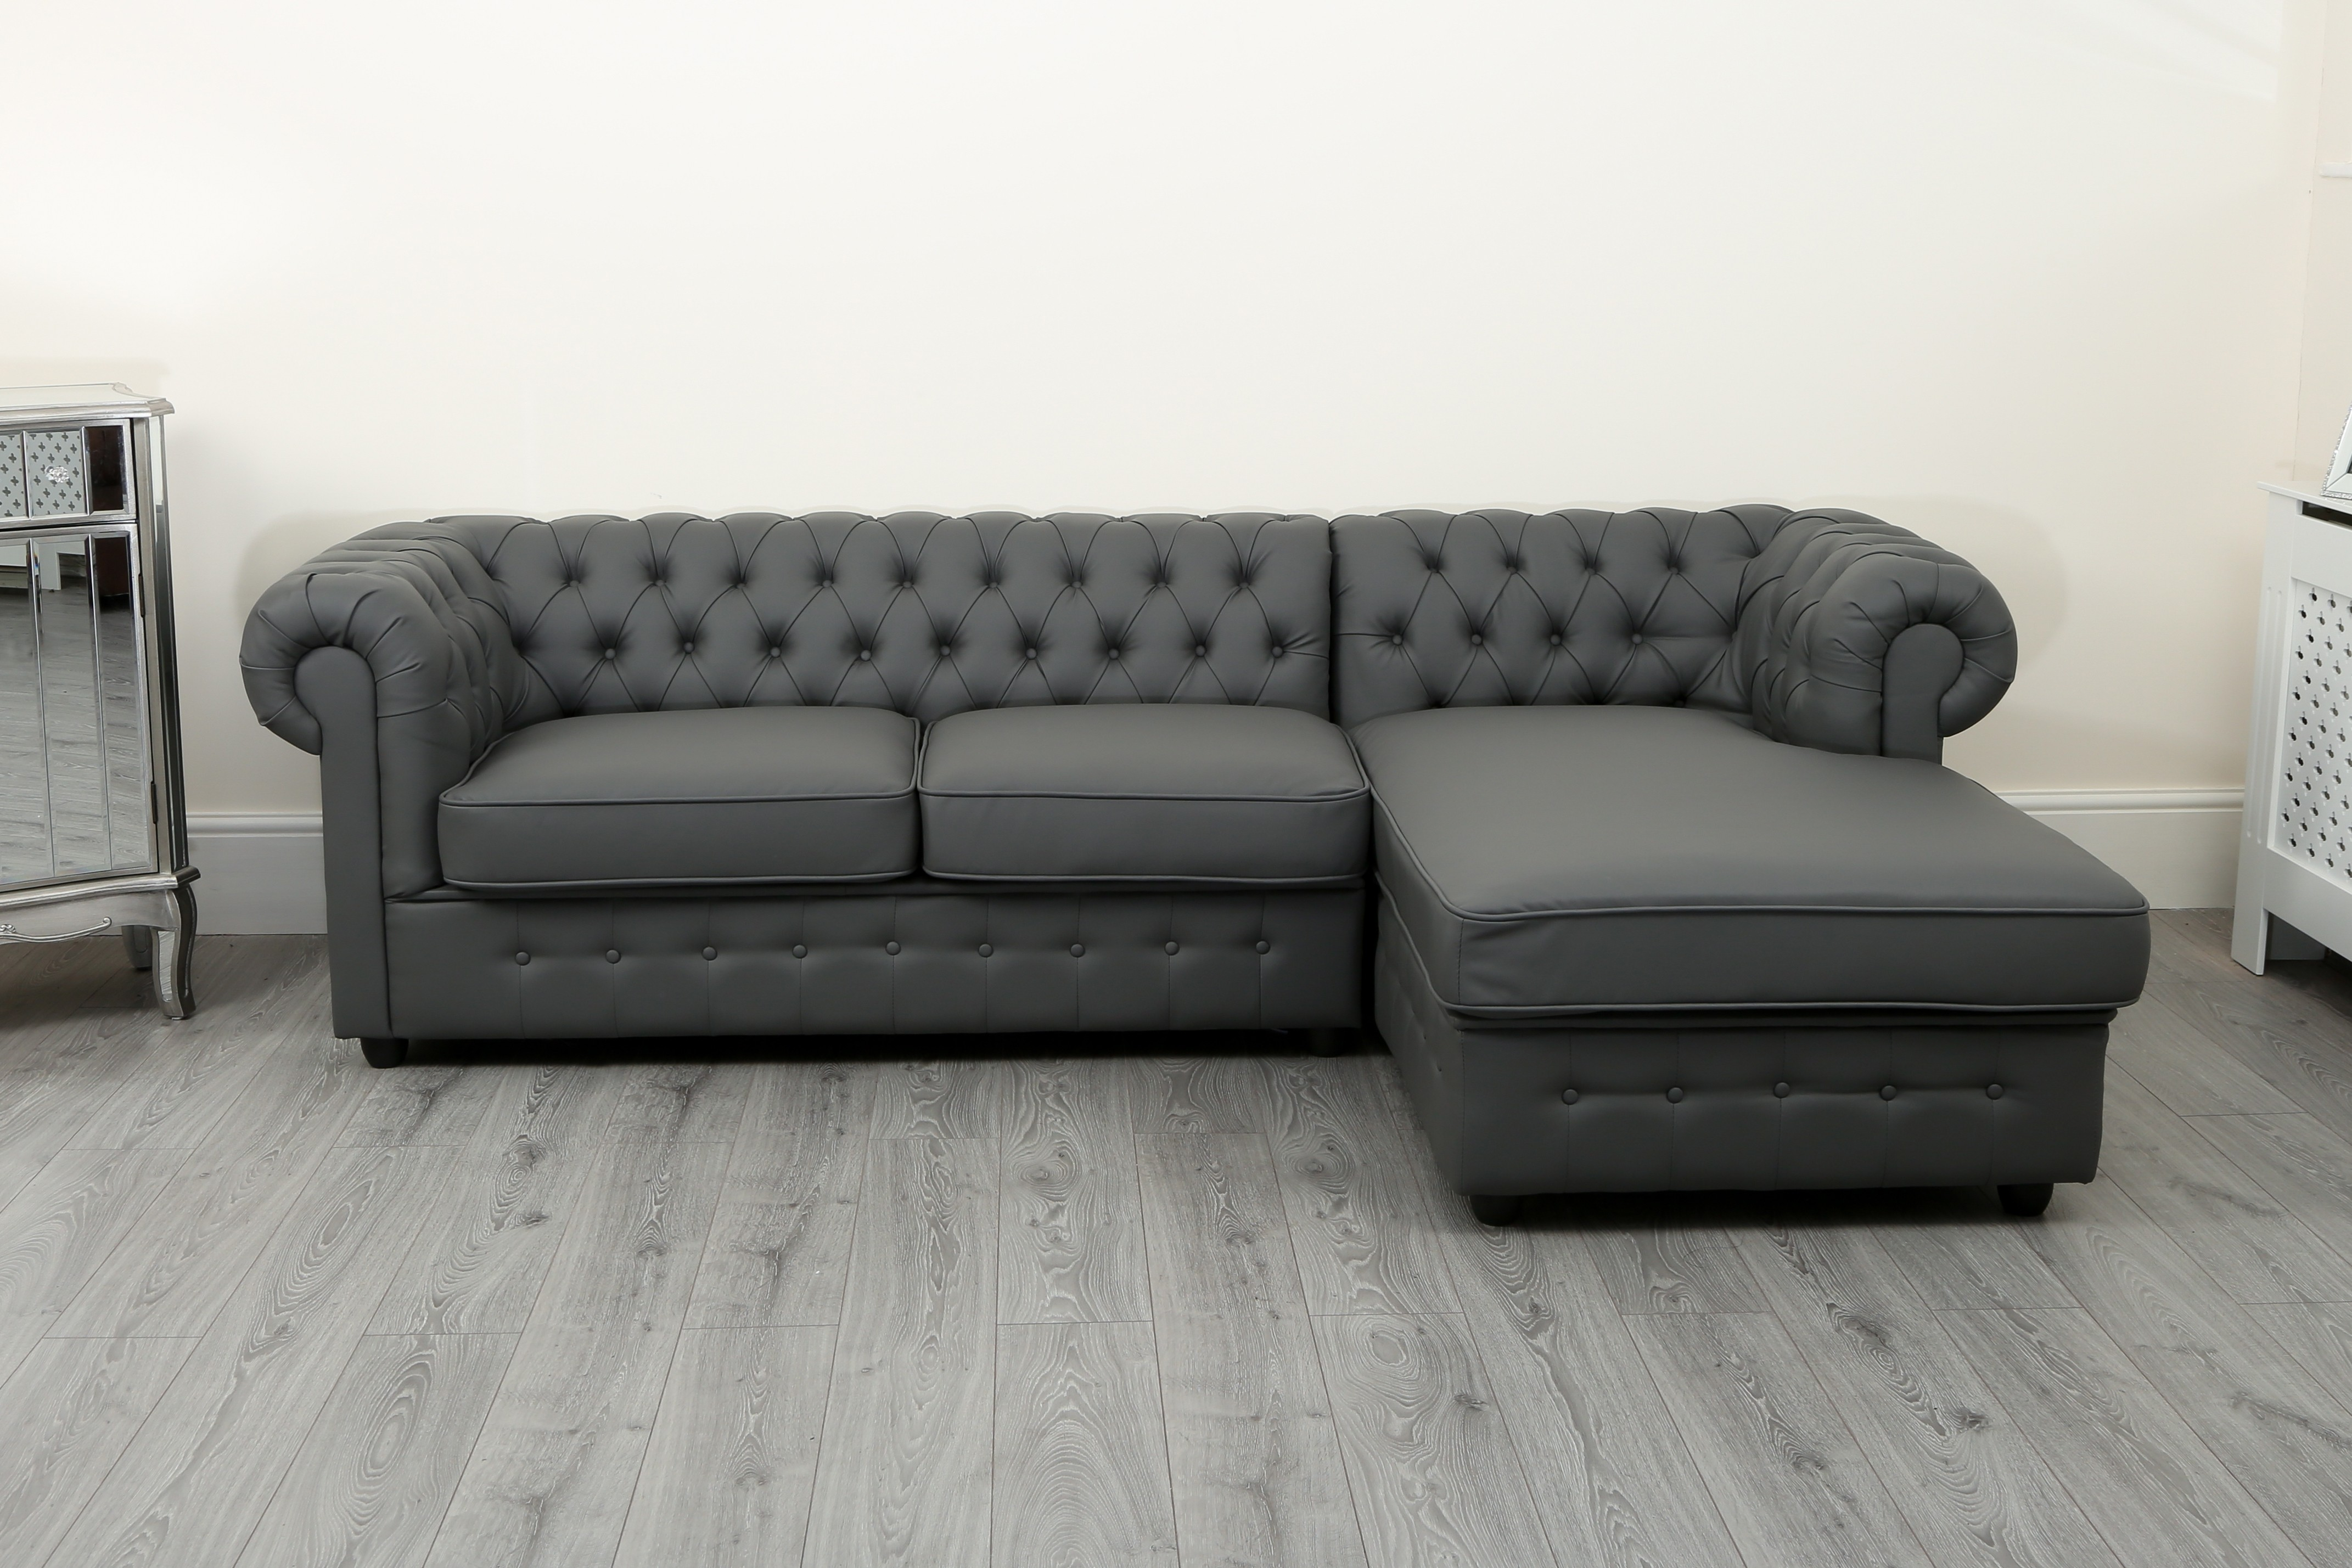 Empire Chesterfield Corner Sofa Bed in Grey PU Leather ...